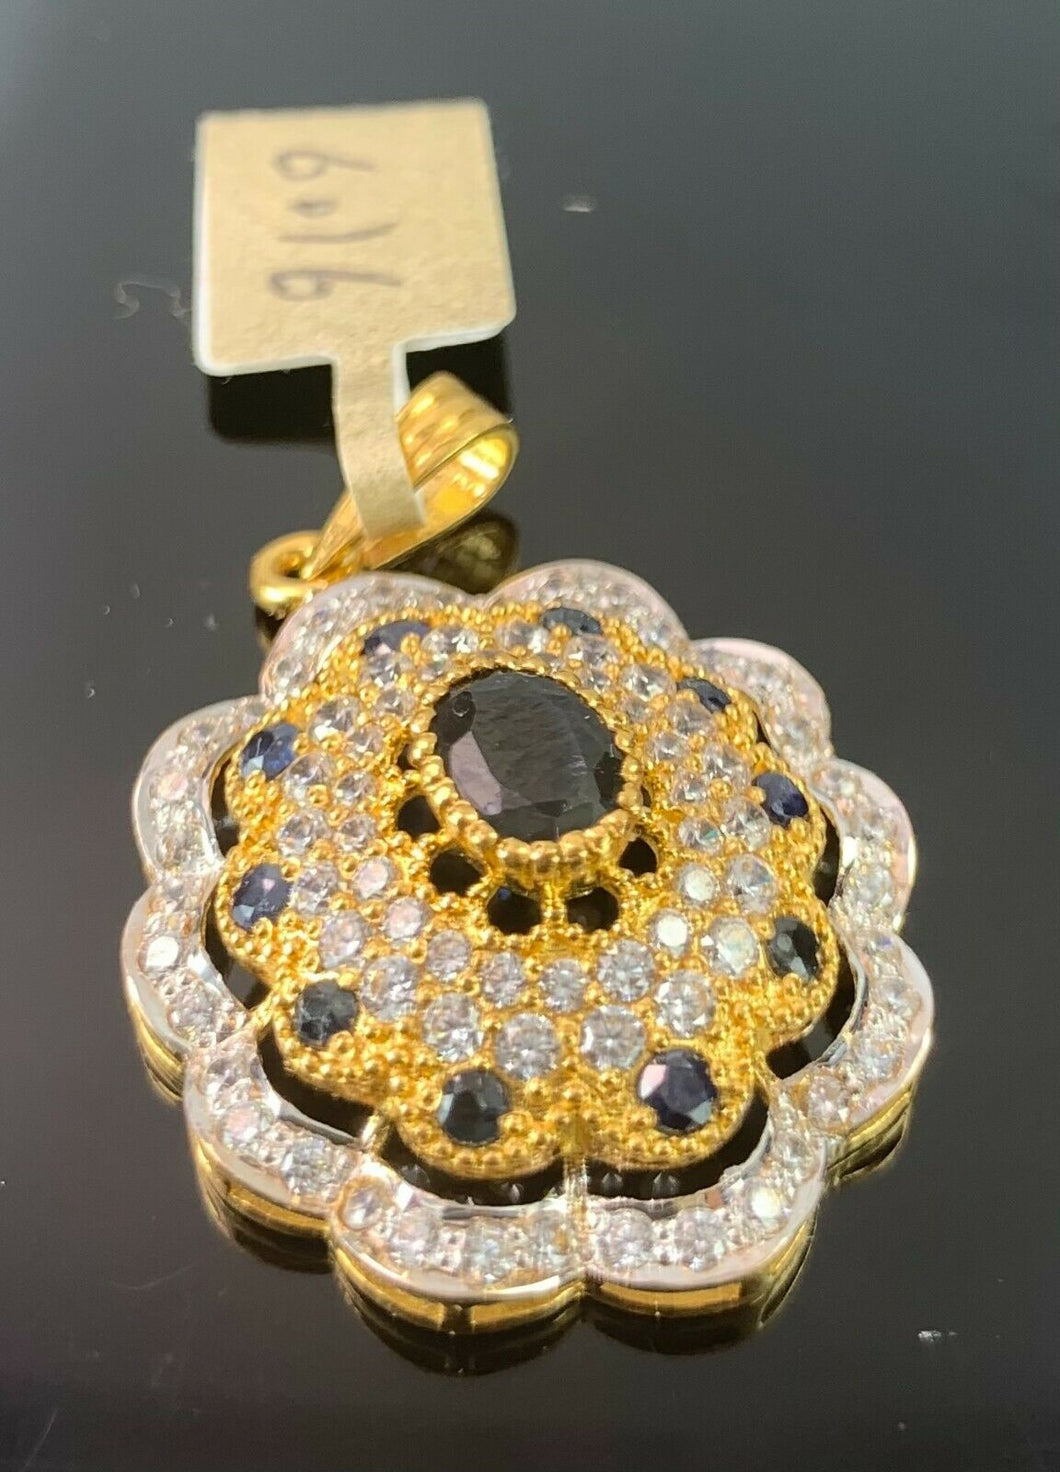 22k Pendant Solid Gold Elegant Floral Filigree With Onyx Stones Design P502